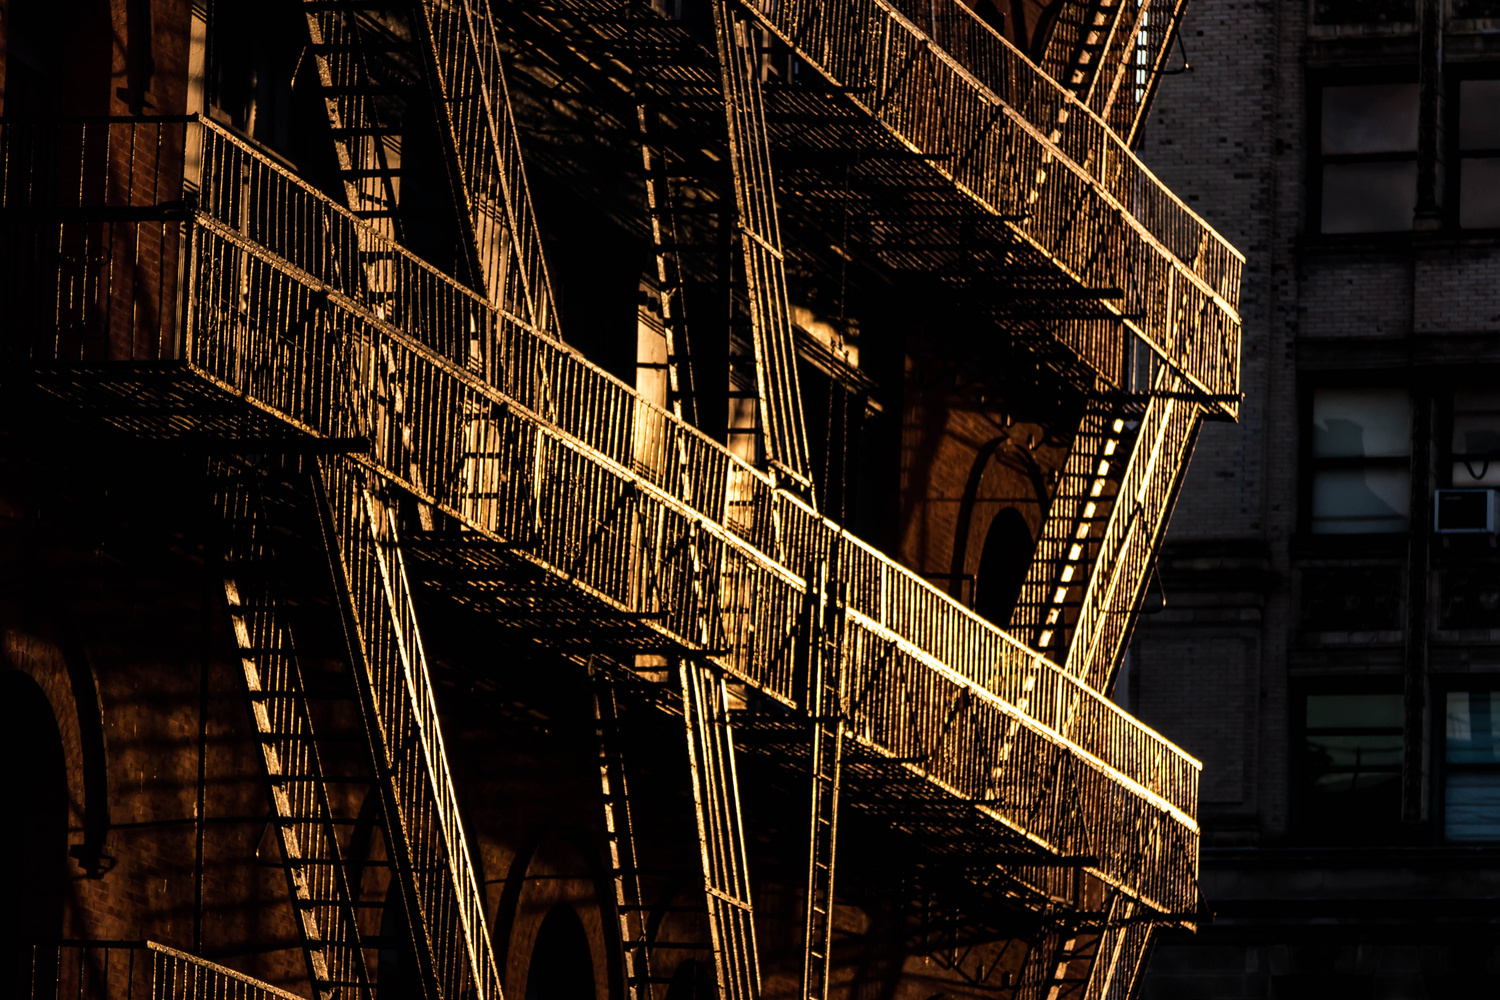 Fire Escape by Benjamin Prater